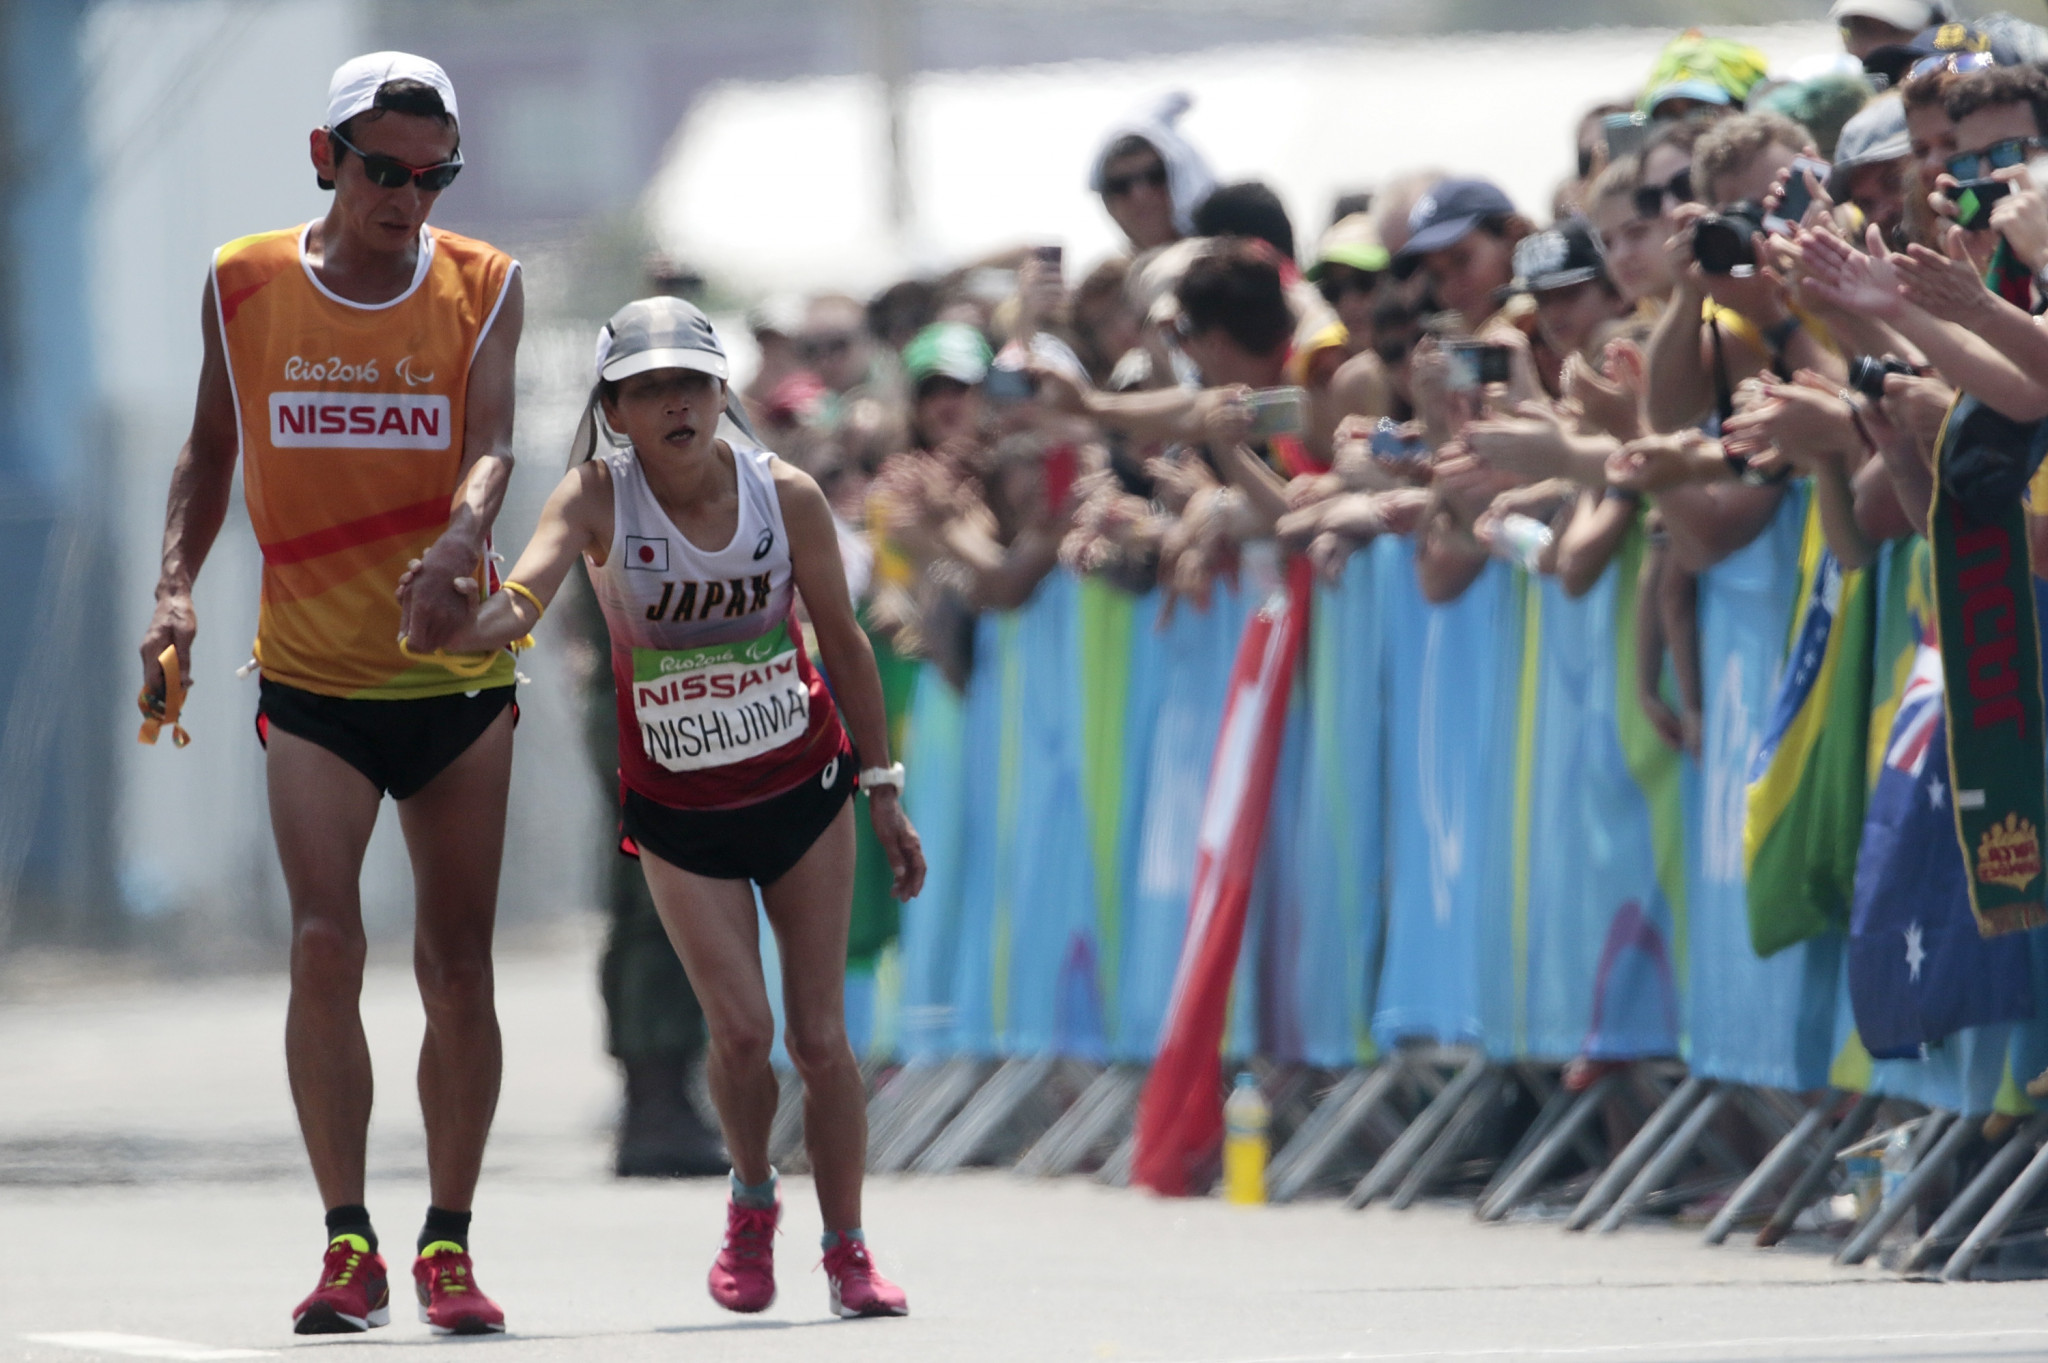 The marathons at the Tokyo 2020 Paralympic Games will start at 6:30am rather than 7am ©Getty Images